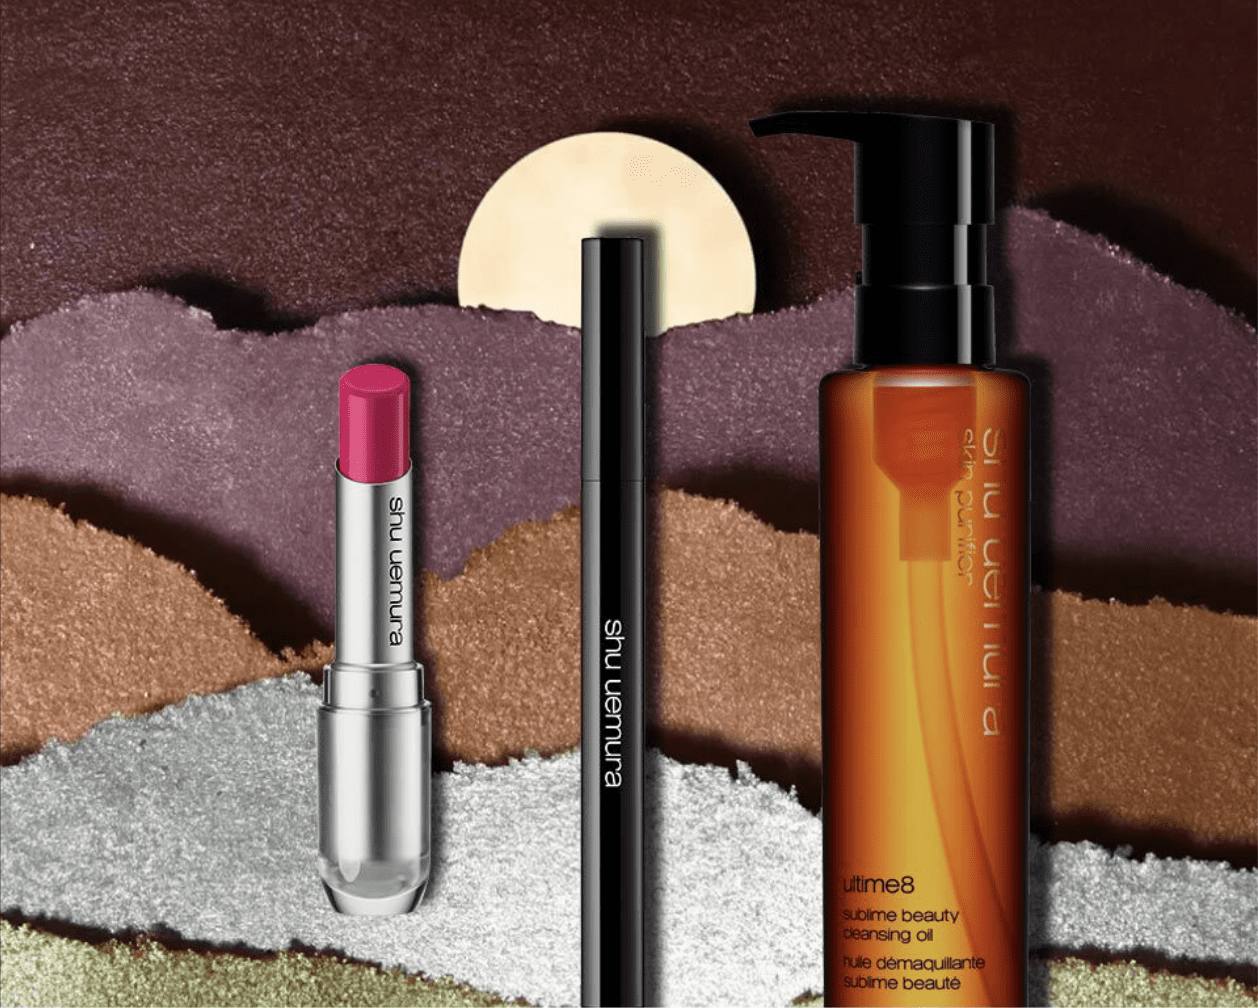 Shu Uemura: 25% off sitewide + Free gift!